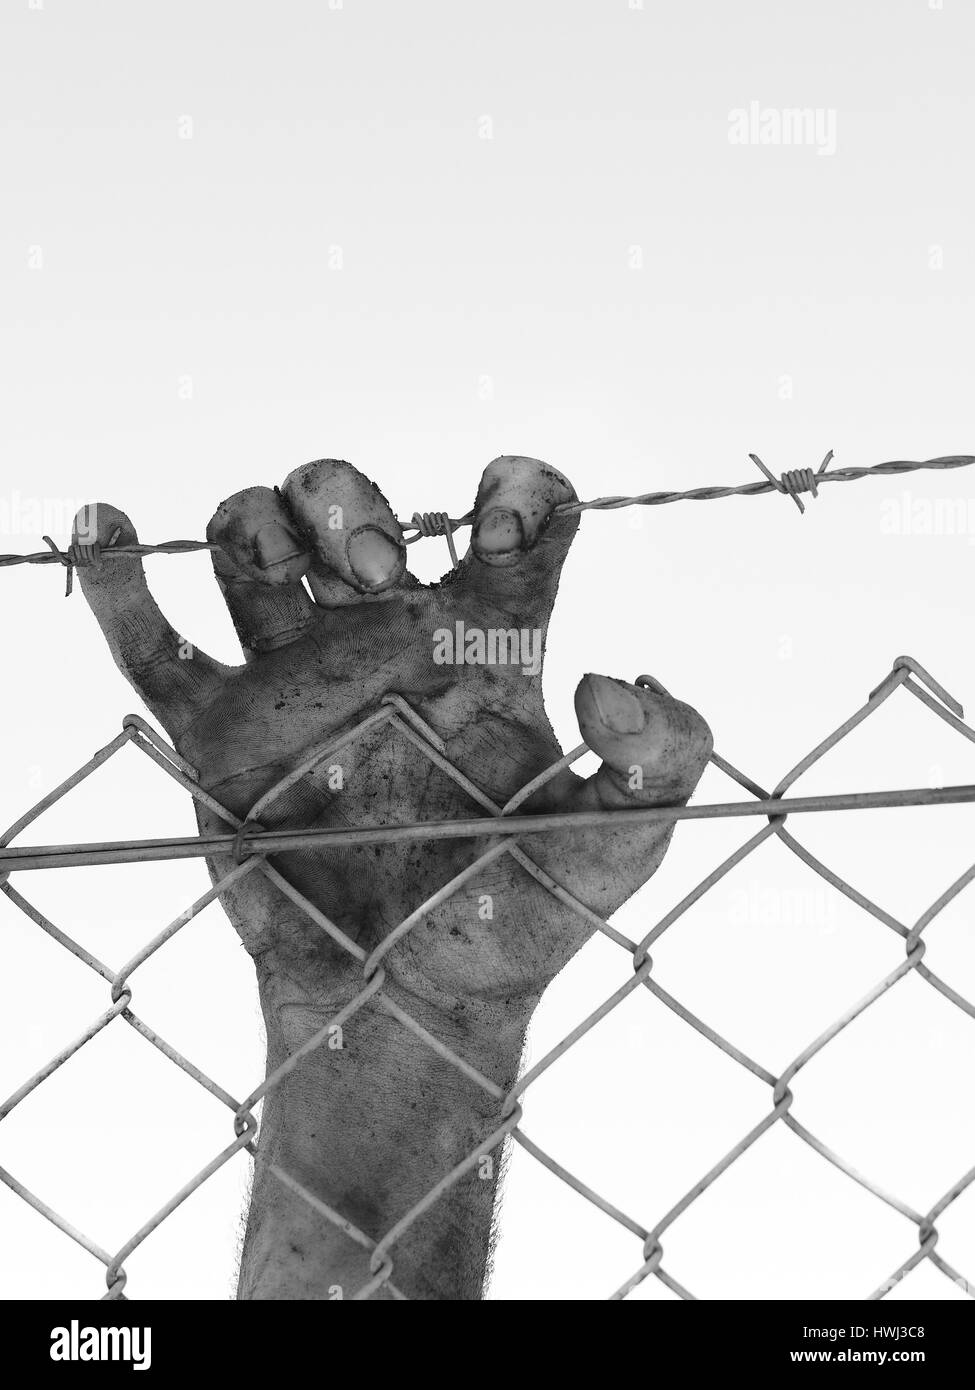 Dirty hand clinging to a steel barb wire fence, black and white, Australia 2016 - Stock Image